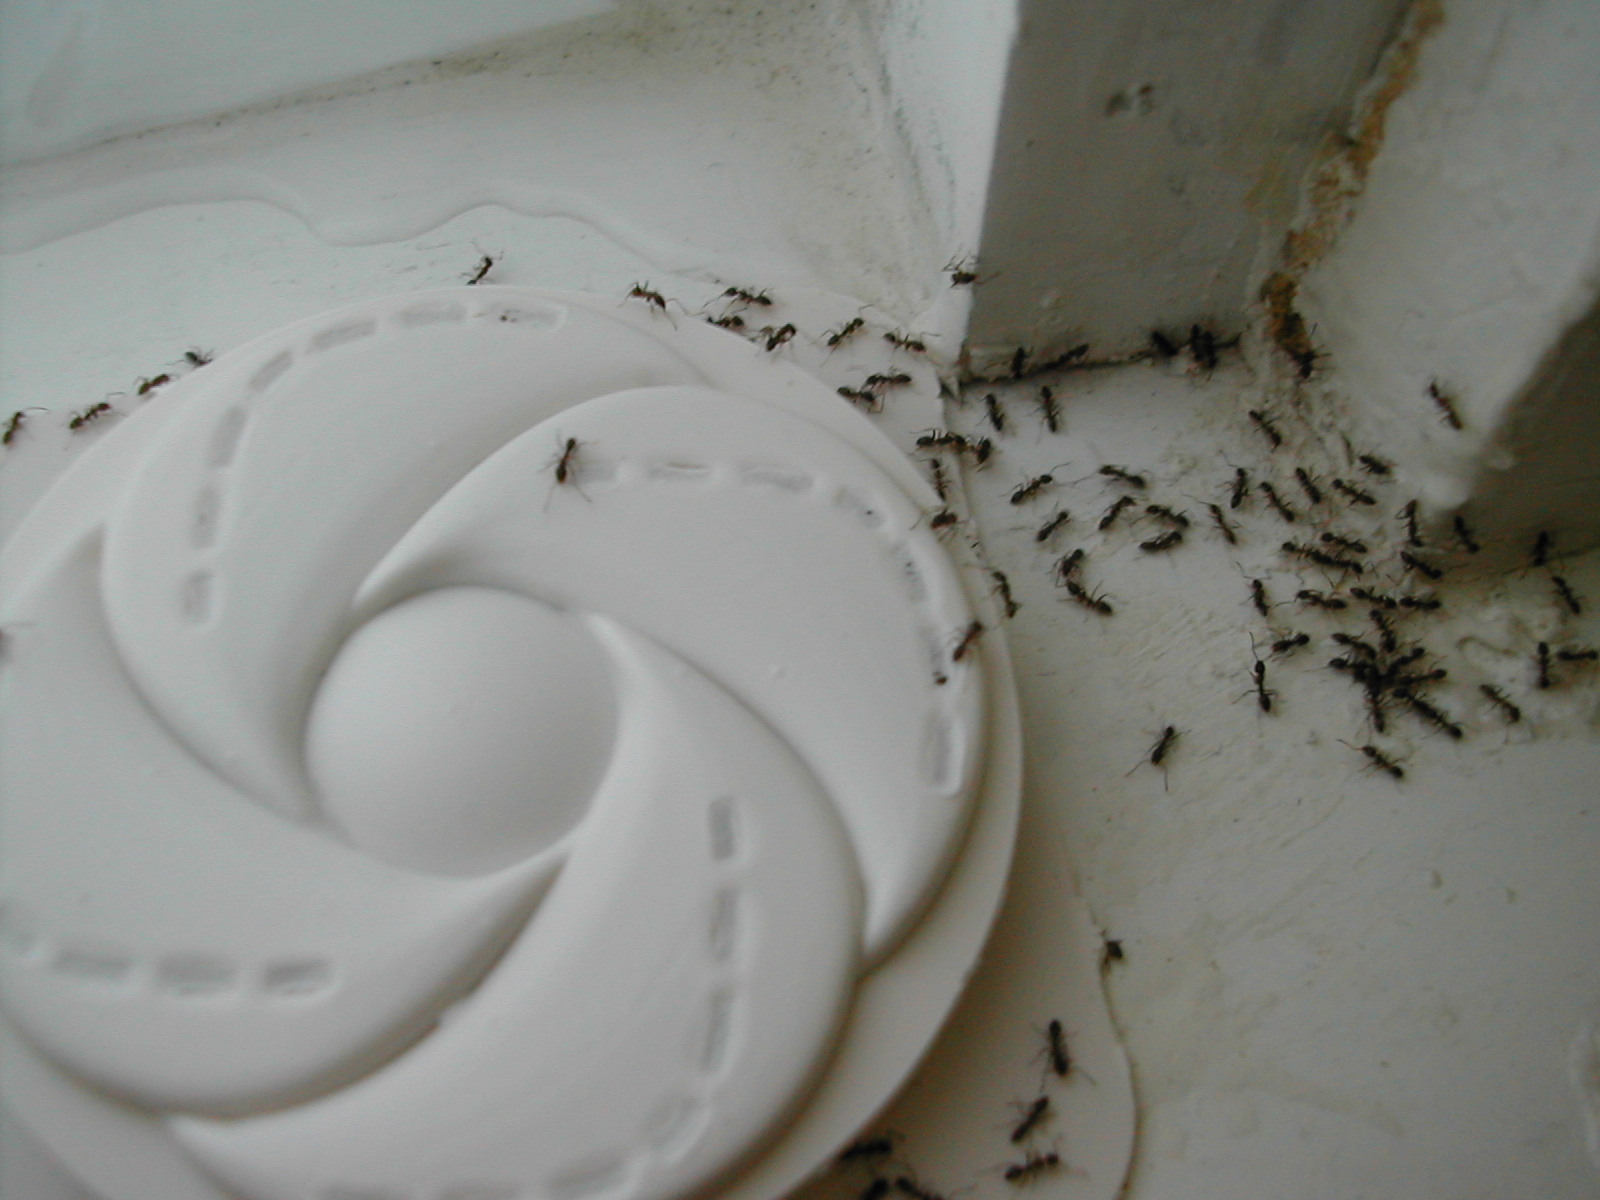 I have ants in my house - Wikimedia Commons